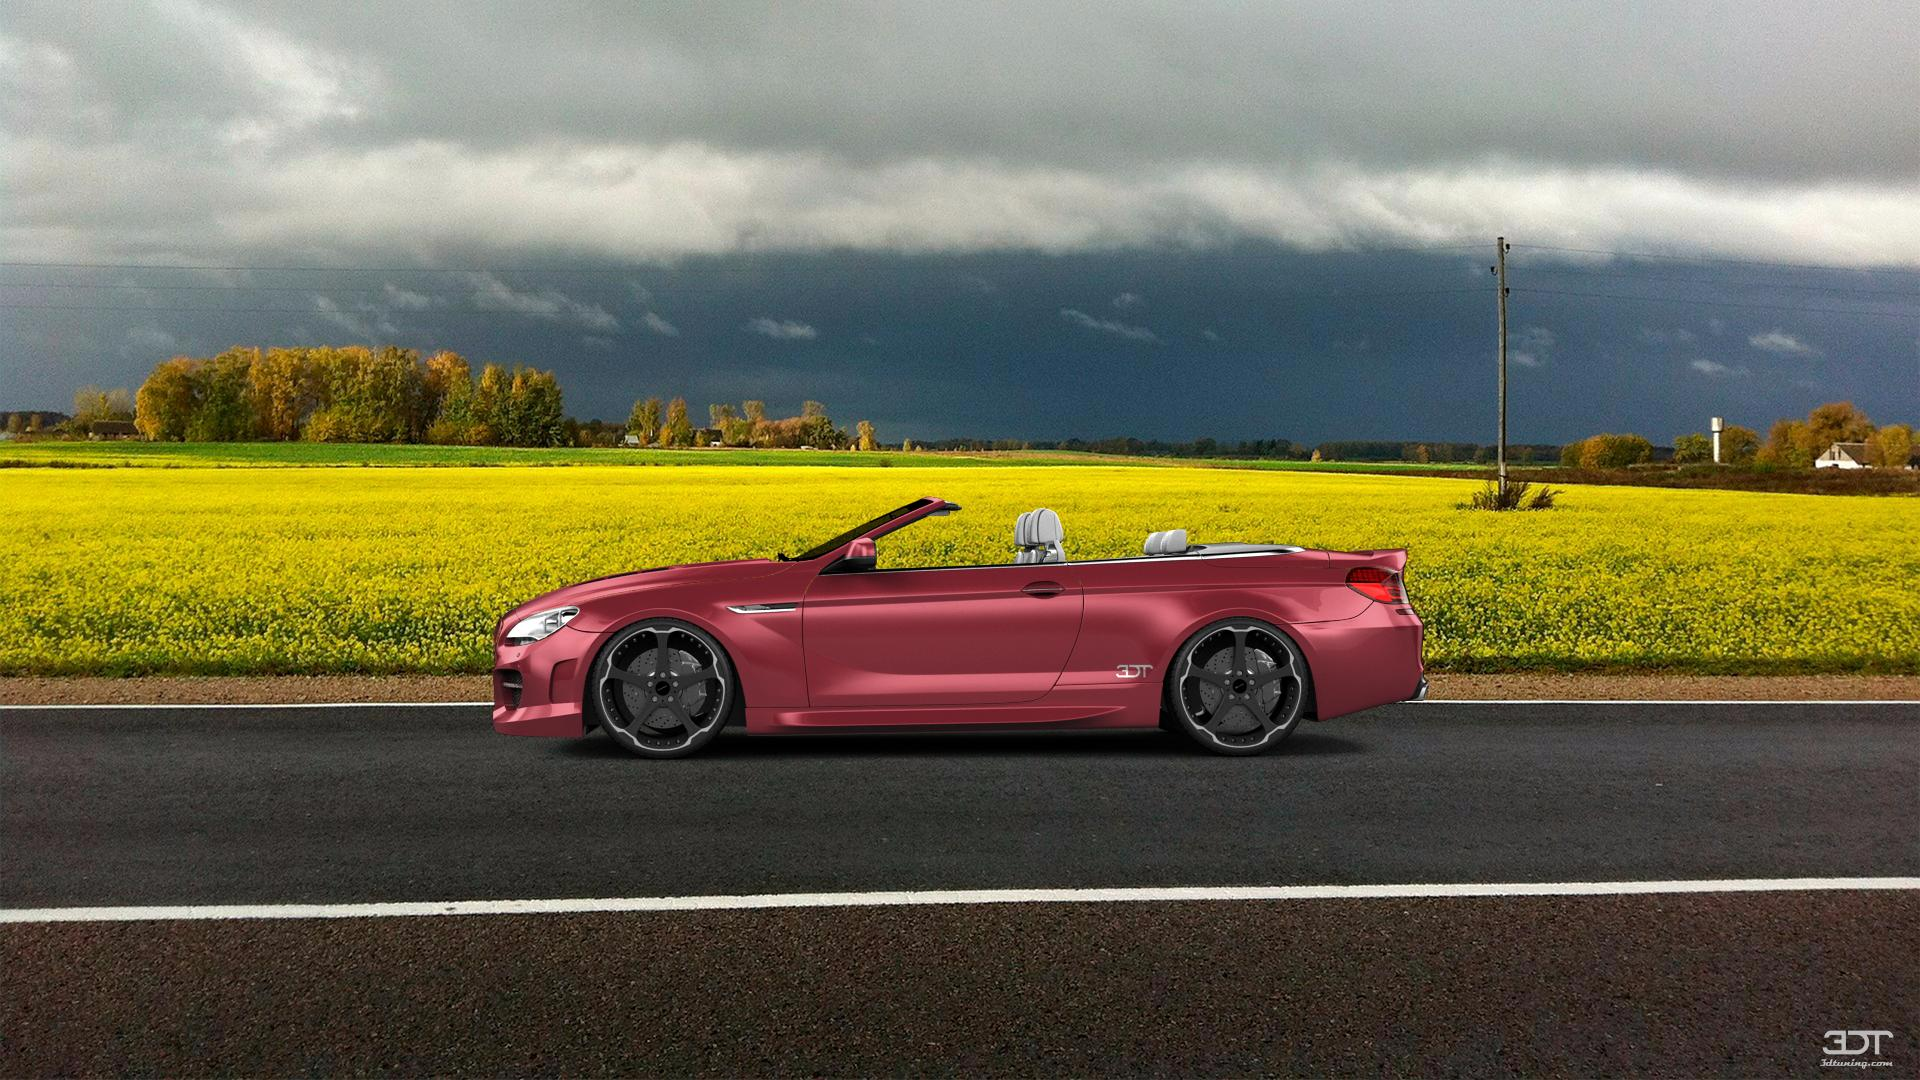 3dtuning Of Bmw 6 Series Convertible 2012 3dtuning Com Unique On Line Car Configurator For